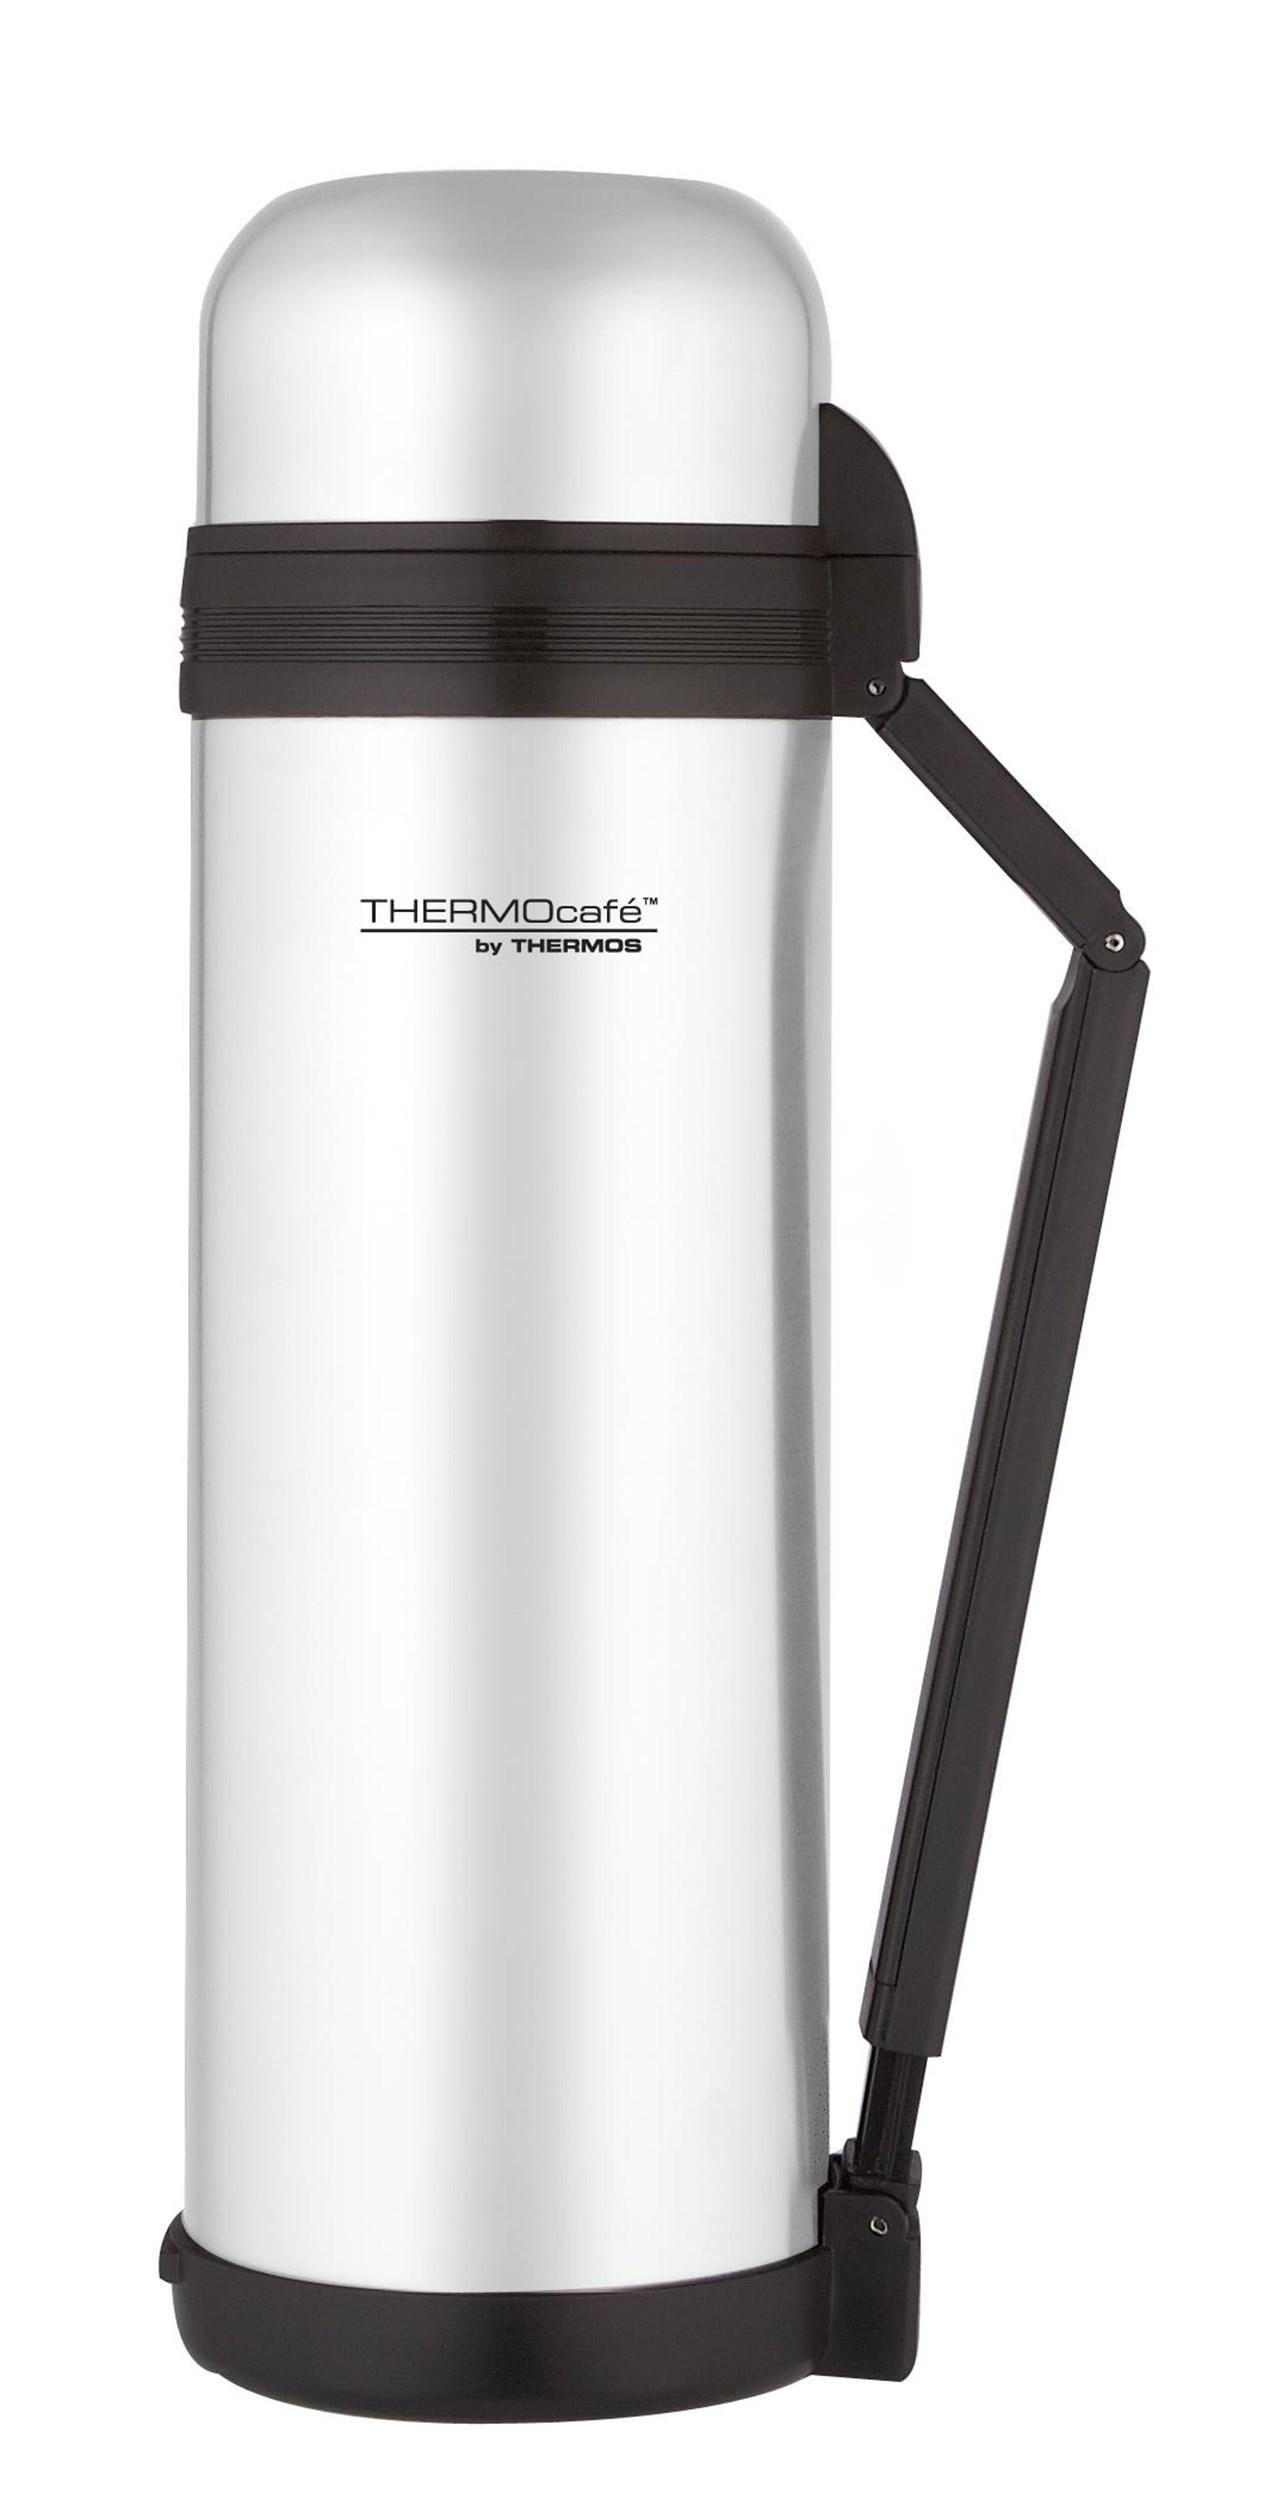 Thermos Stainless Steel Flask with Handle